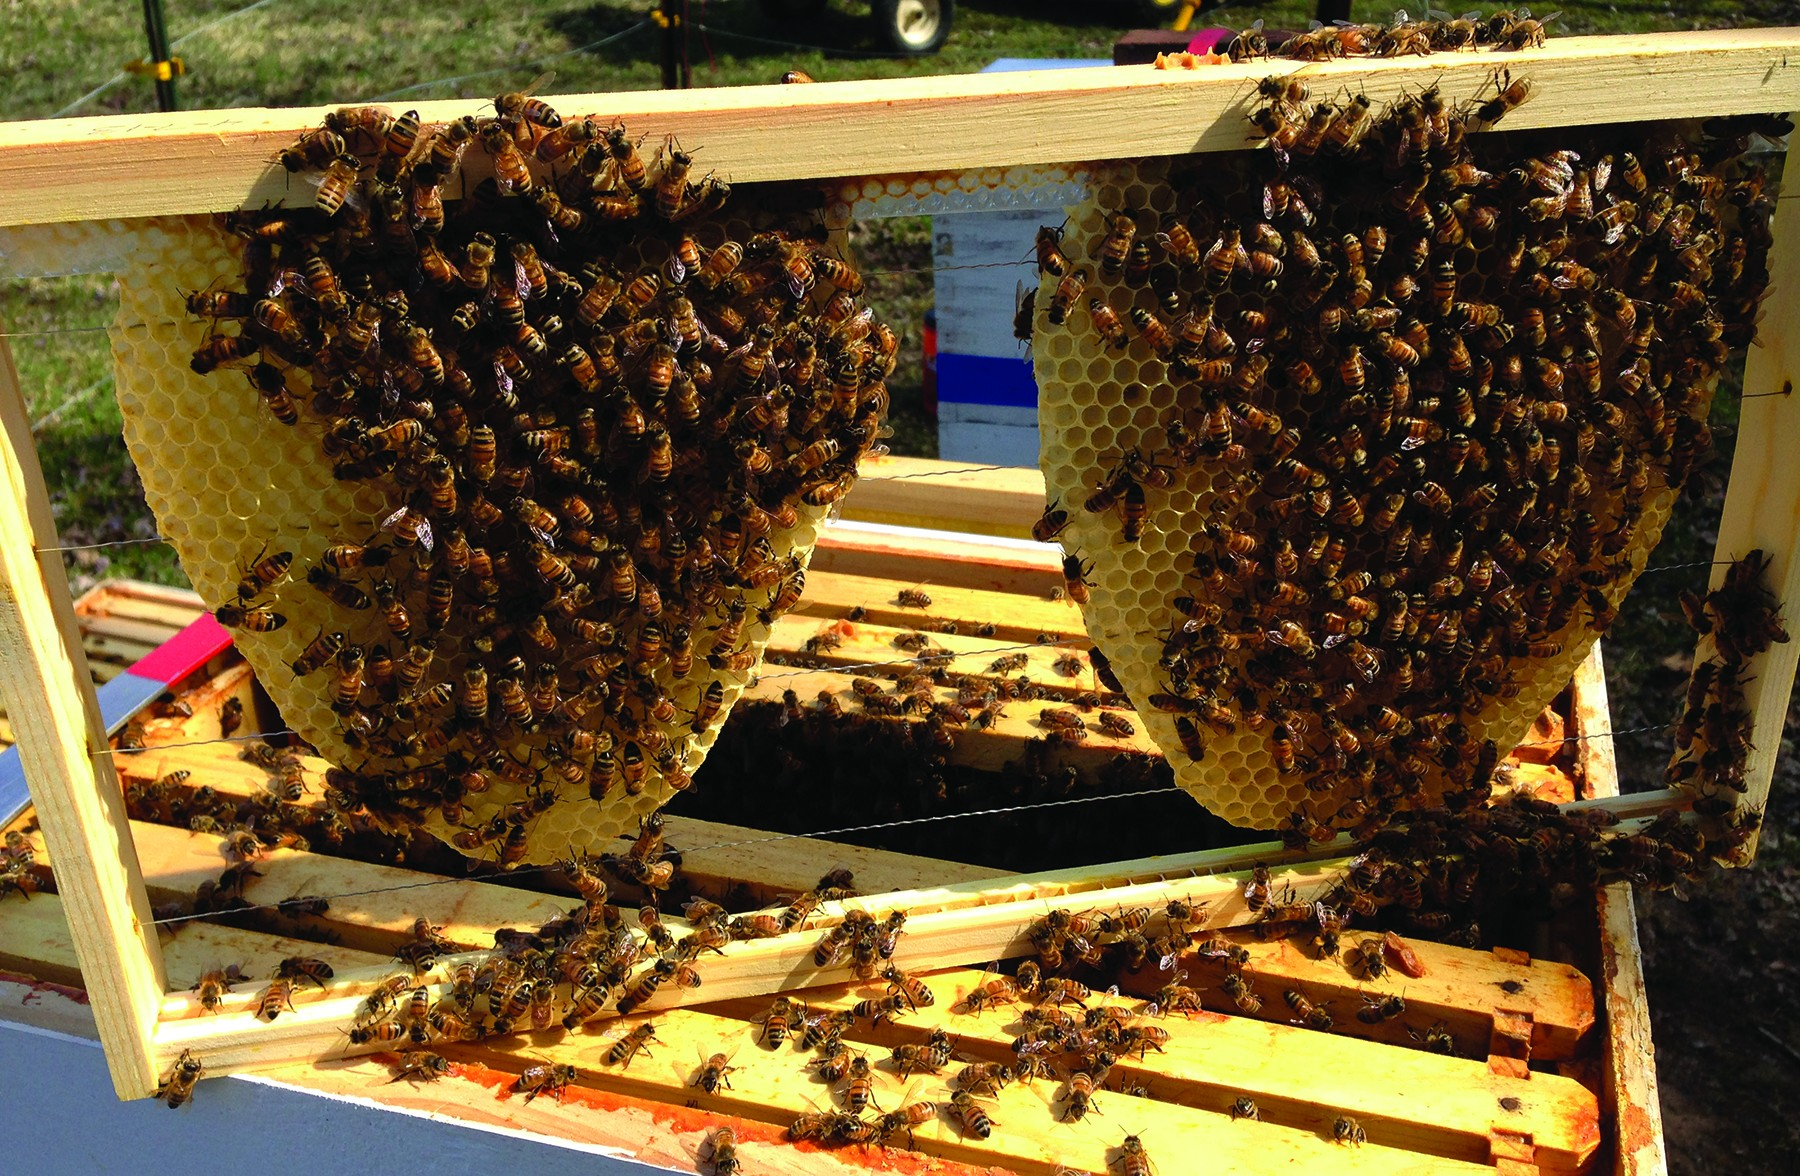 backyard beekeeper talks about life in the hive article the